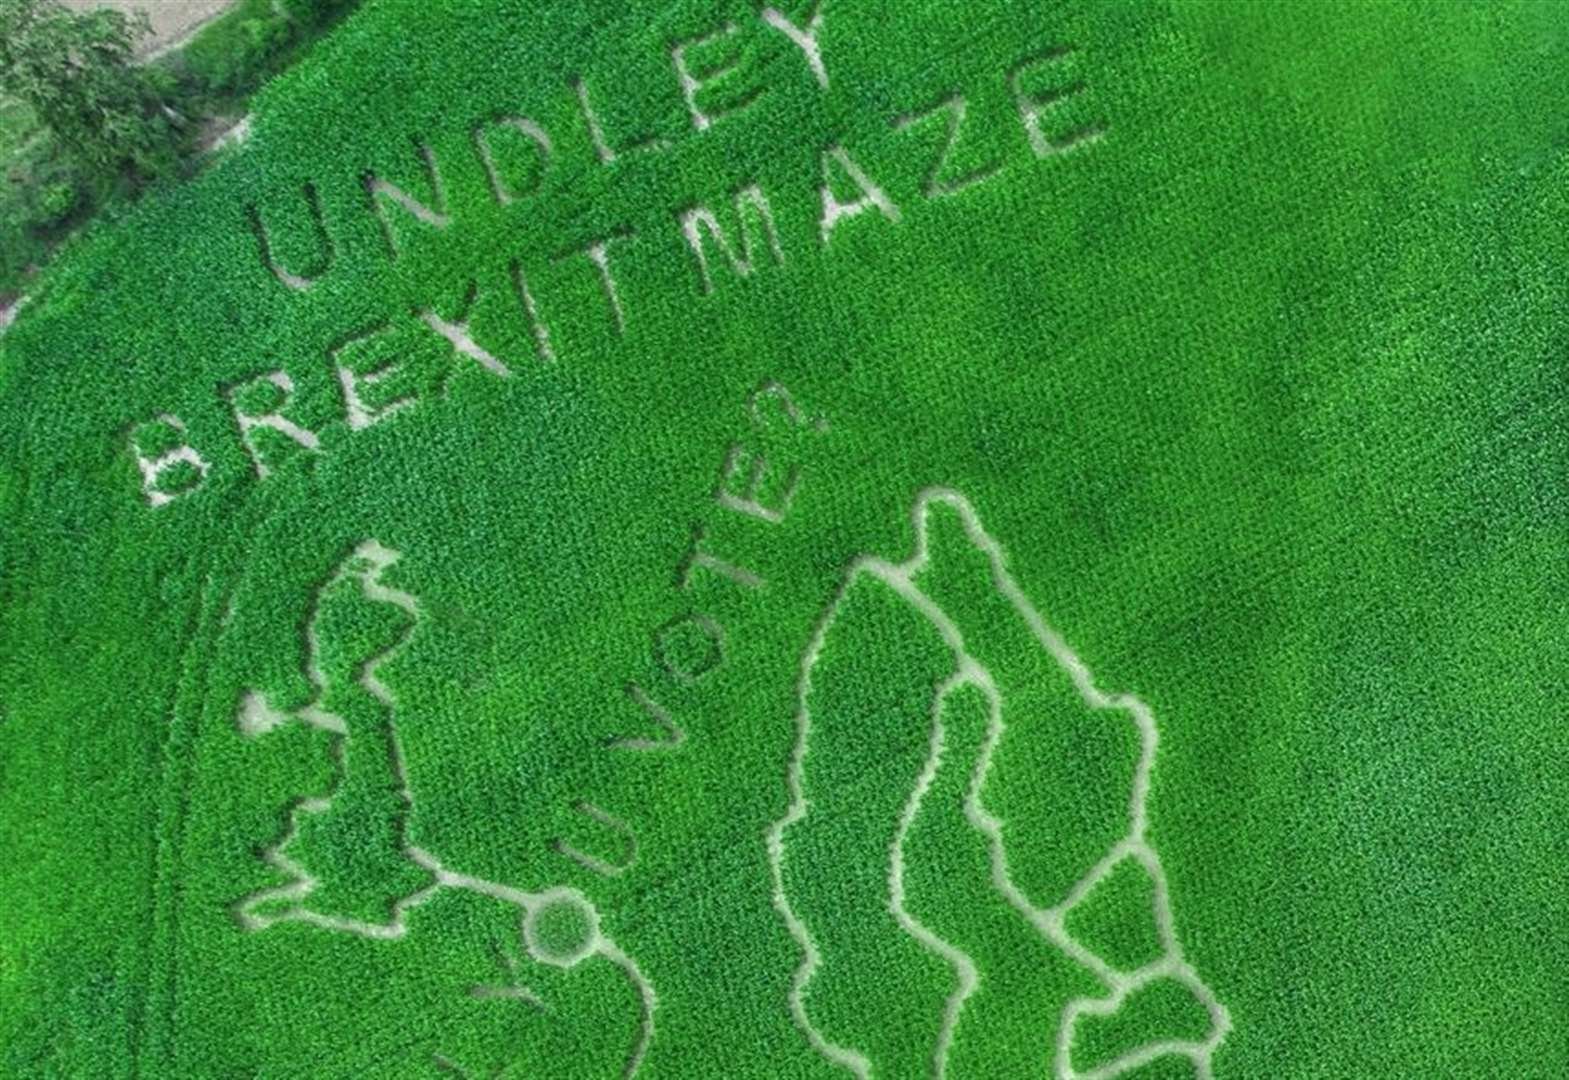 Try finding a way out of the Brexit maze